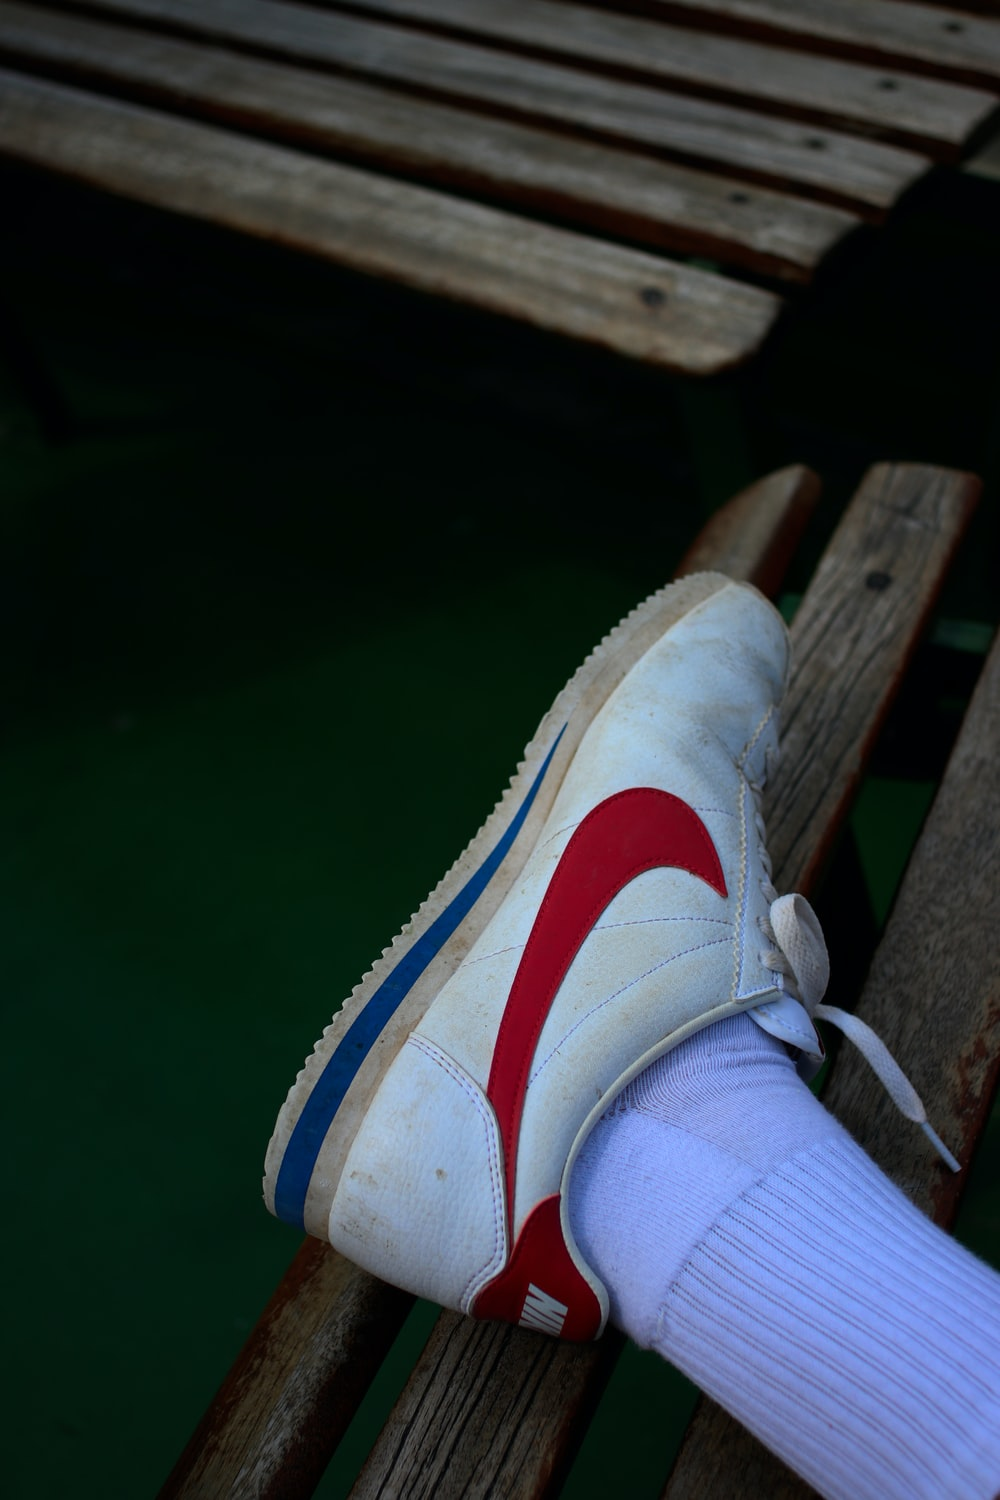 person wearing white and red with blue Nike sneaker